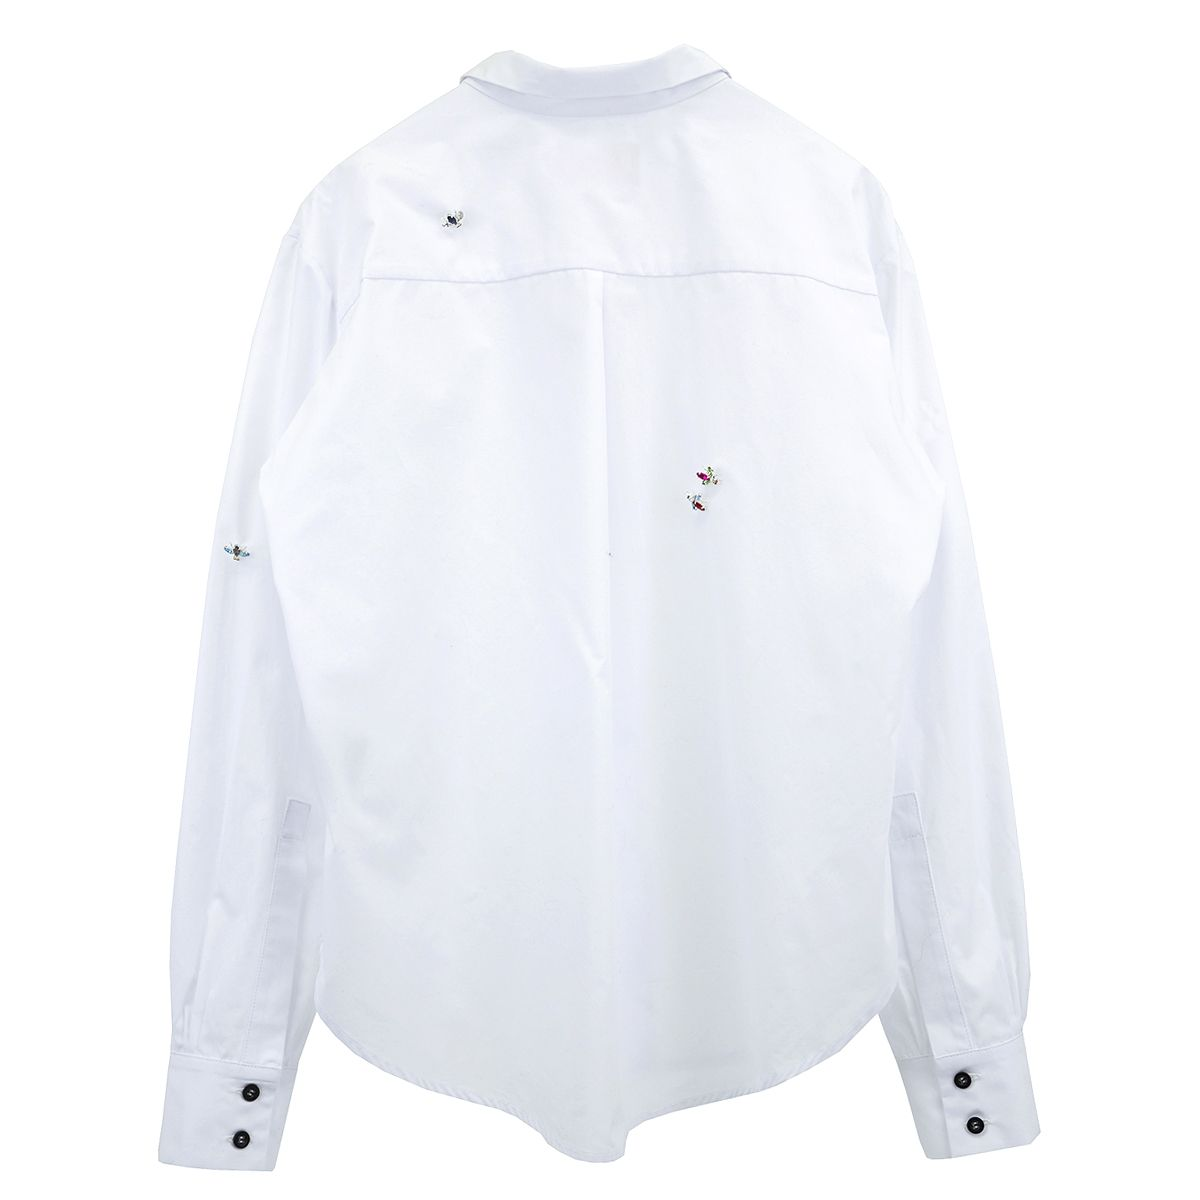 ART SCHOOL FLY HUNTER SHIRT SKEW 2 / WHITE